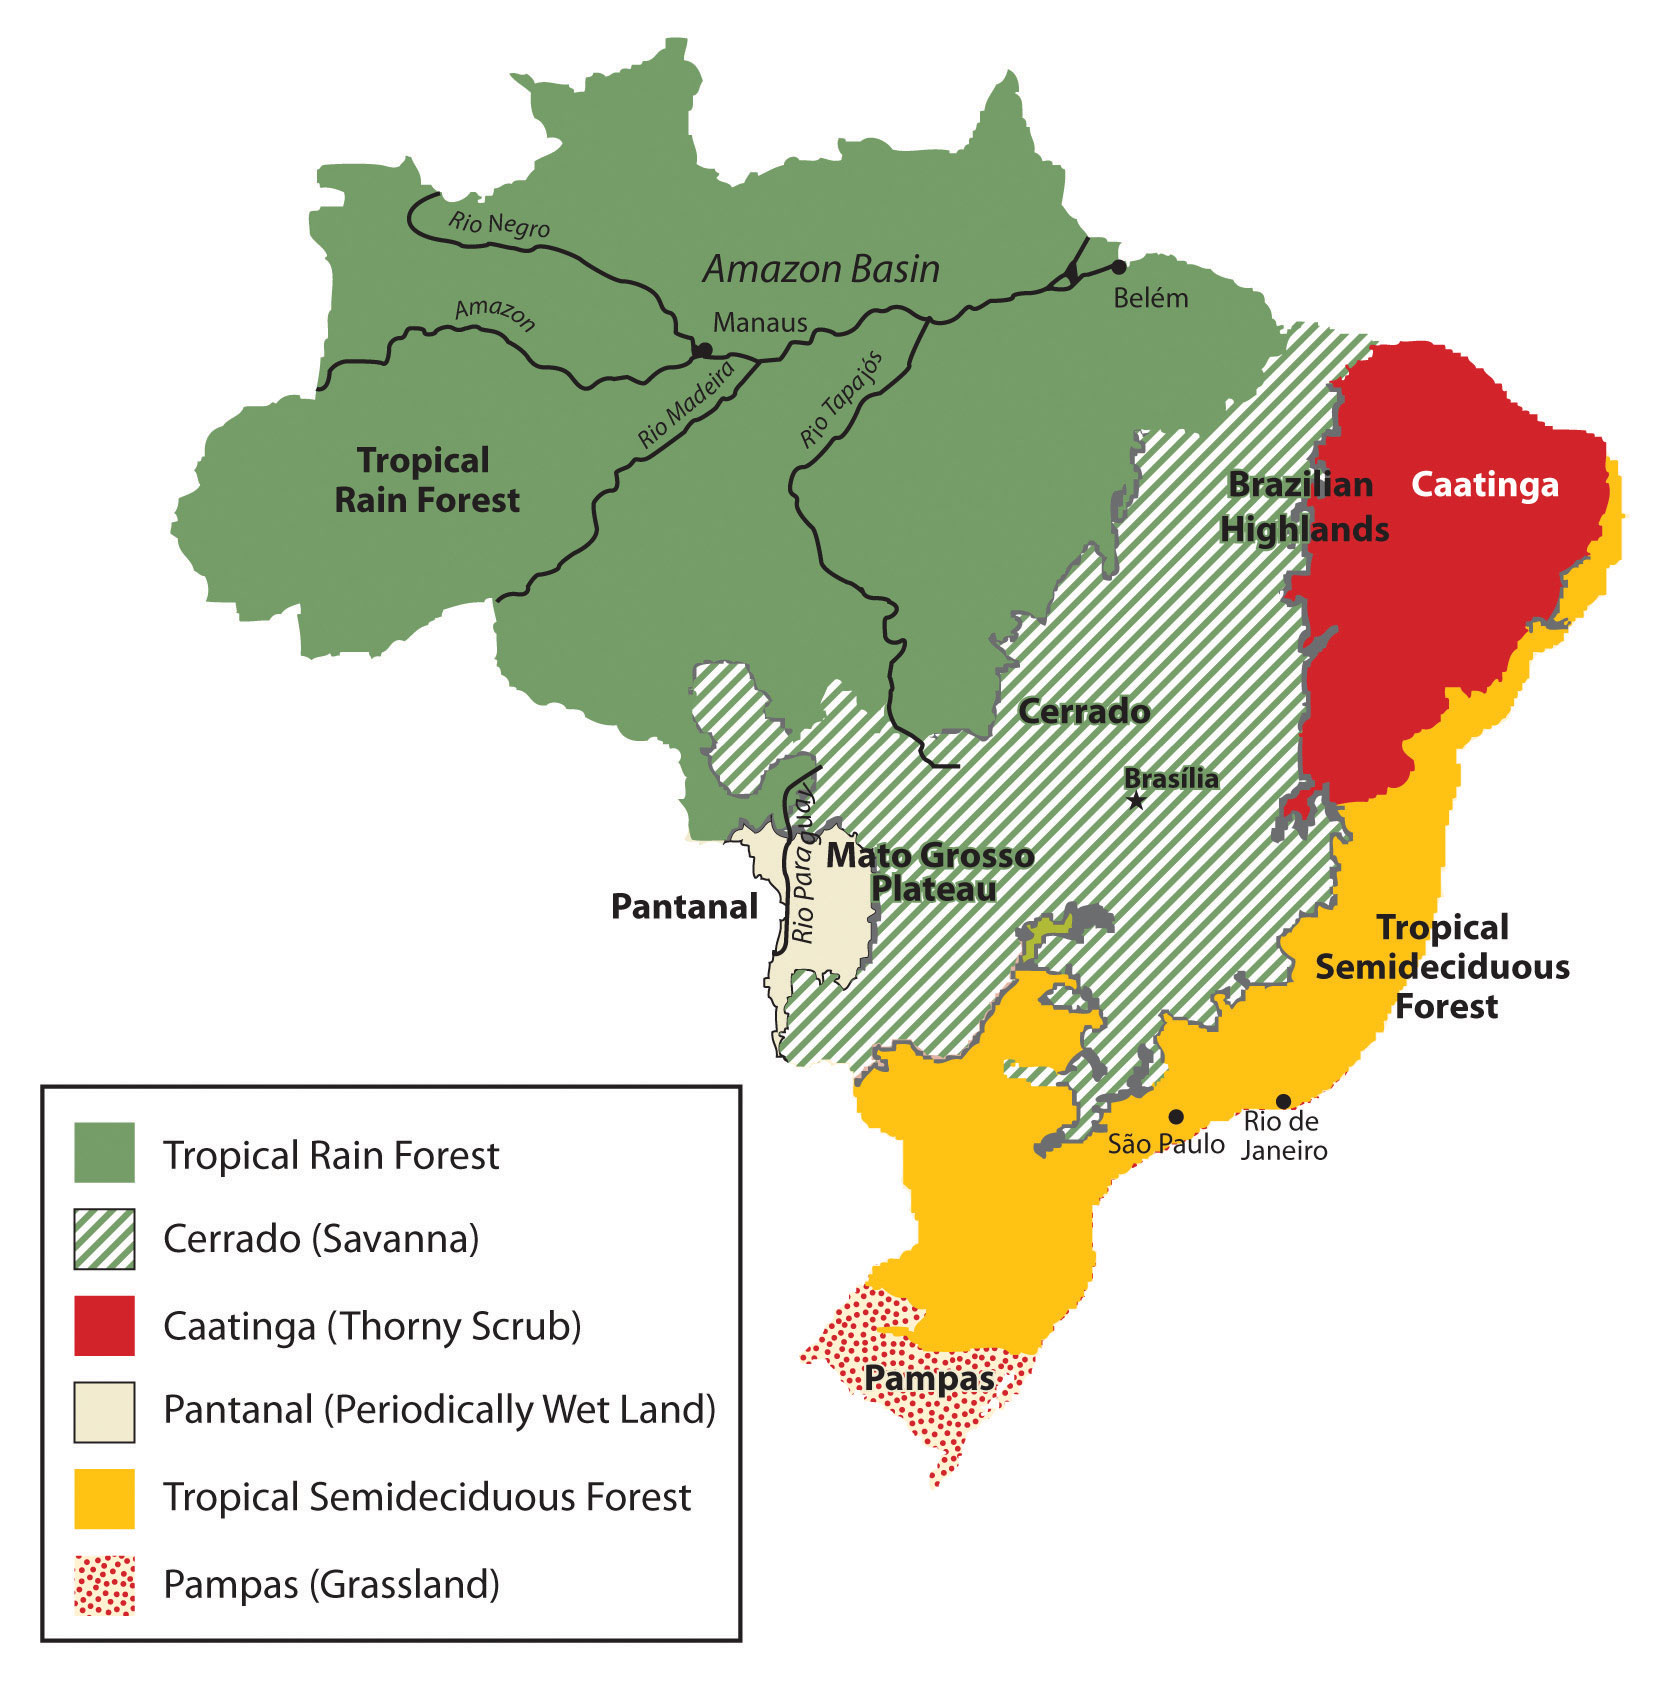 Figure 6.29 Natural Vegetation of Brazil